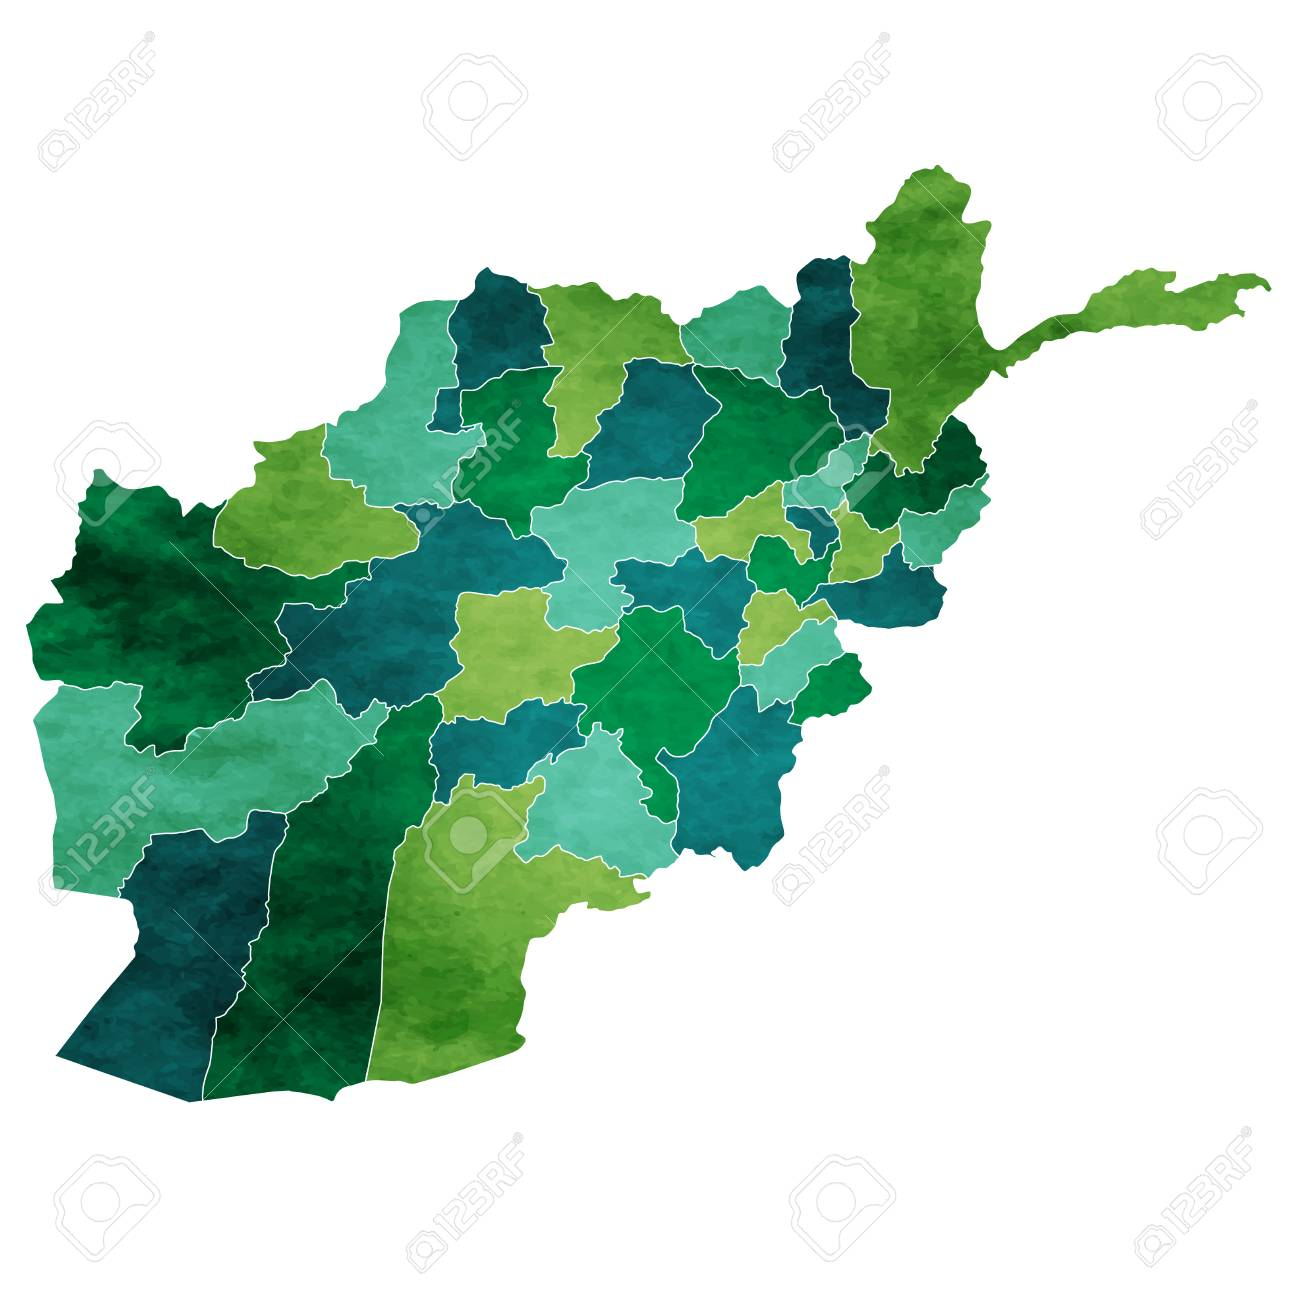 Afghanistan World map country icon